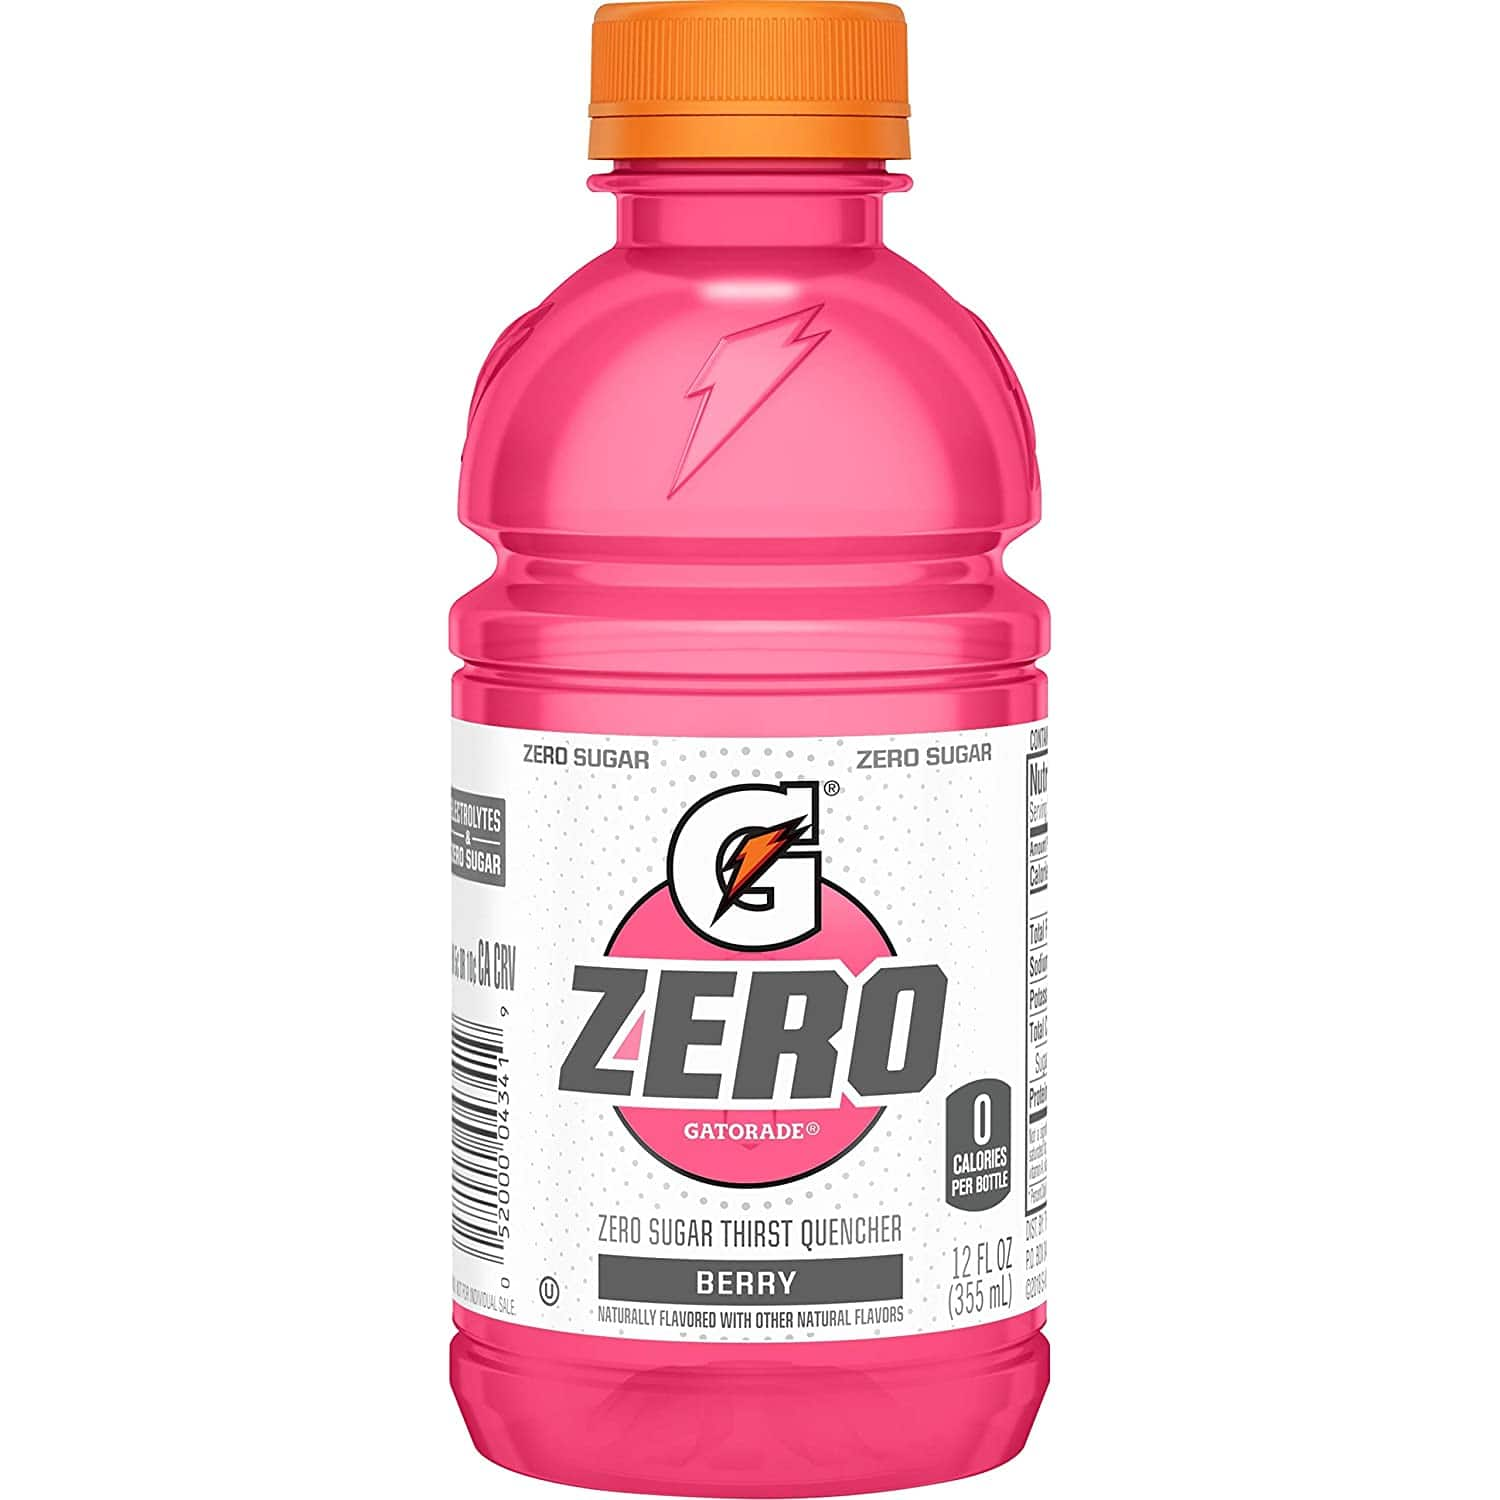 *Back In Stock* Gatorade Zero Sugar Thirst Quencher, Berry, 12 Ounce, 24 Count $7.60